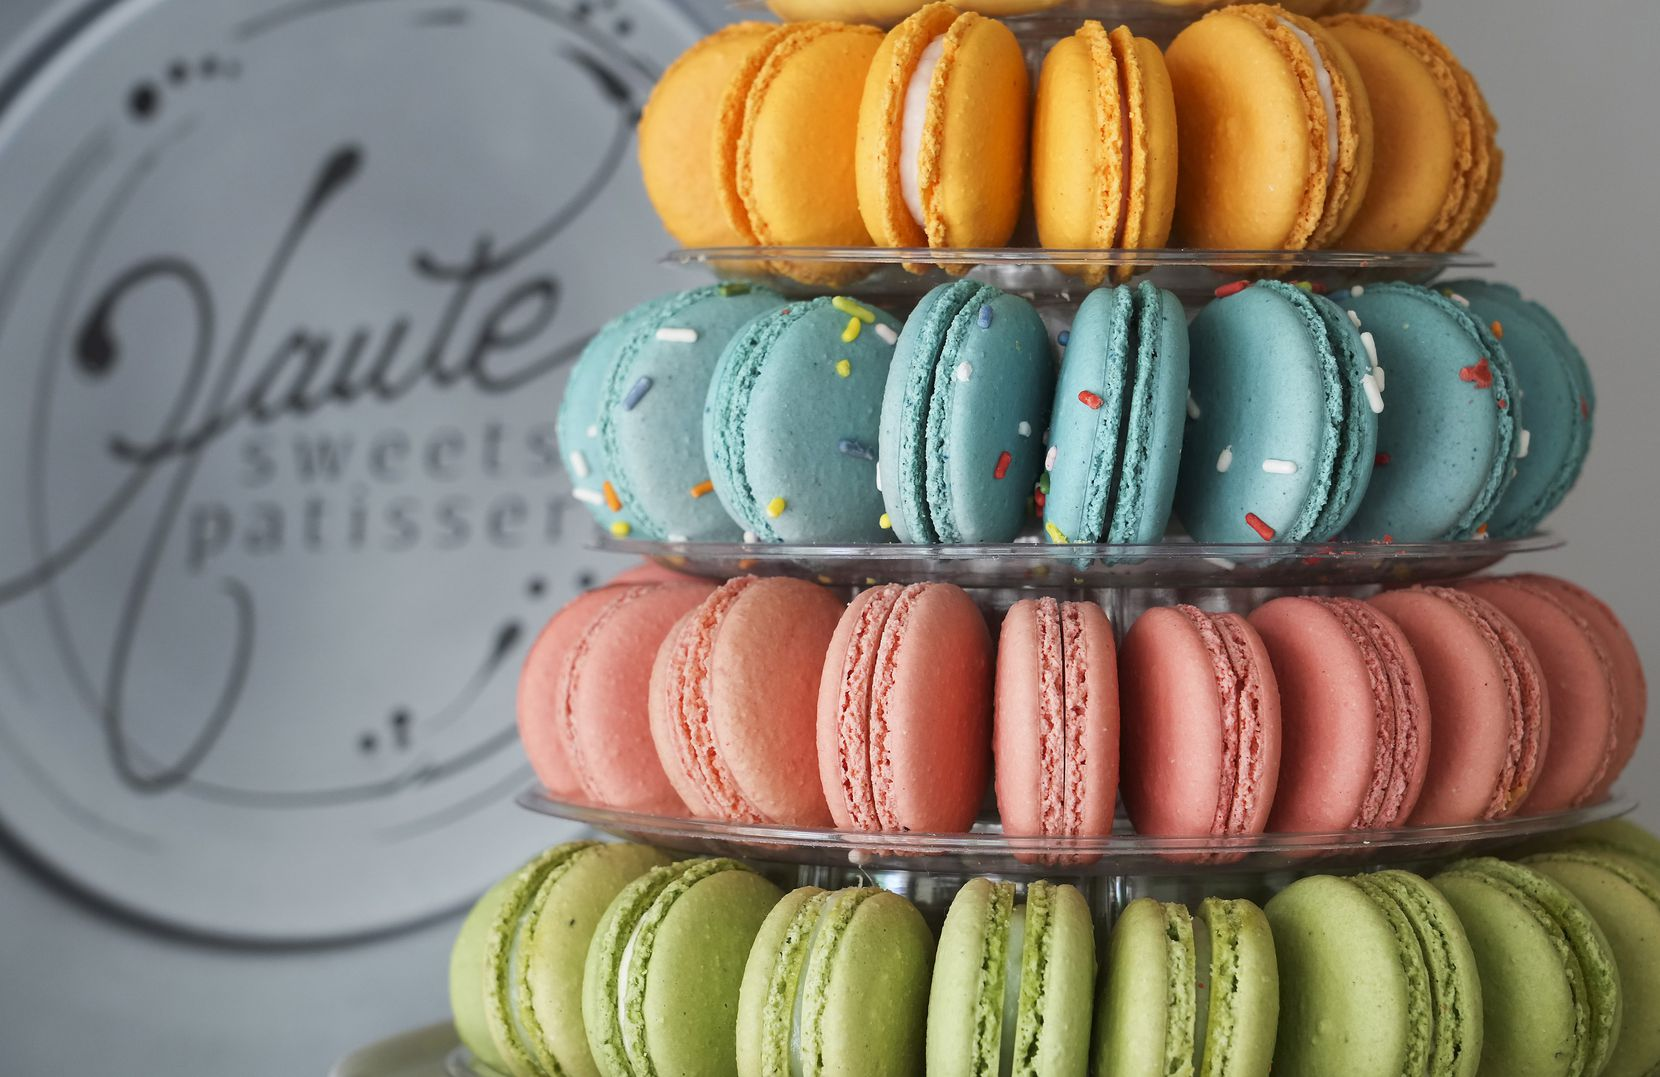 A Macaron Tower at Haute Sweets Patisserie in Hillcrest Village  (Smiley N. Pool/The Dallas Morning News)